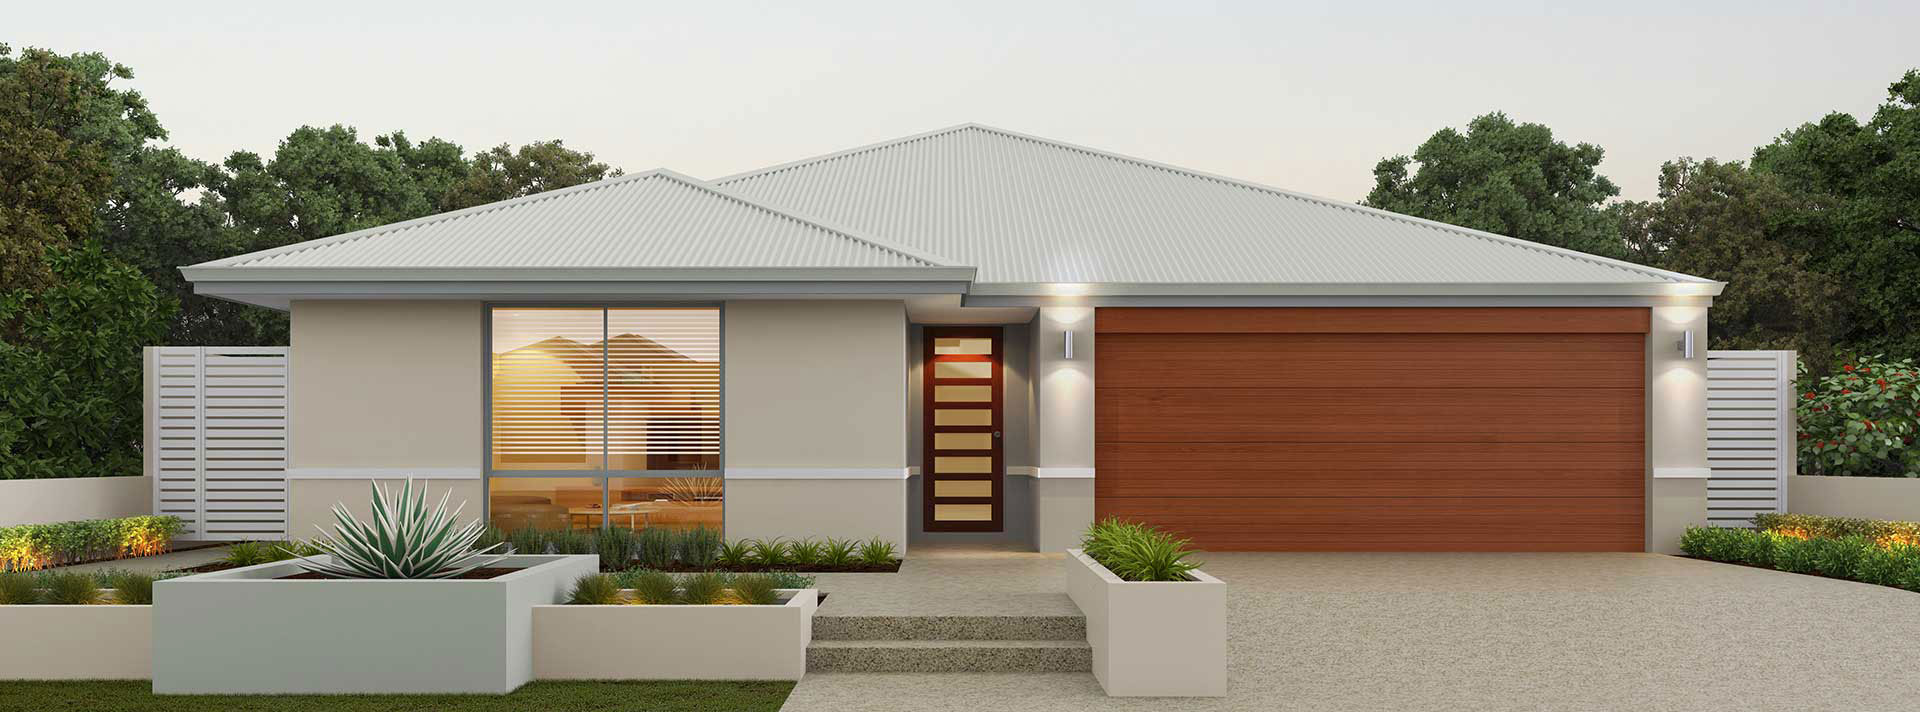 "House frontage of single storey home design ""My Brunswick"""